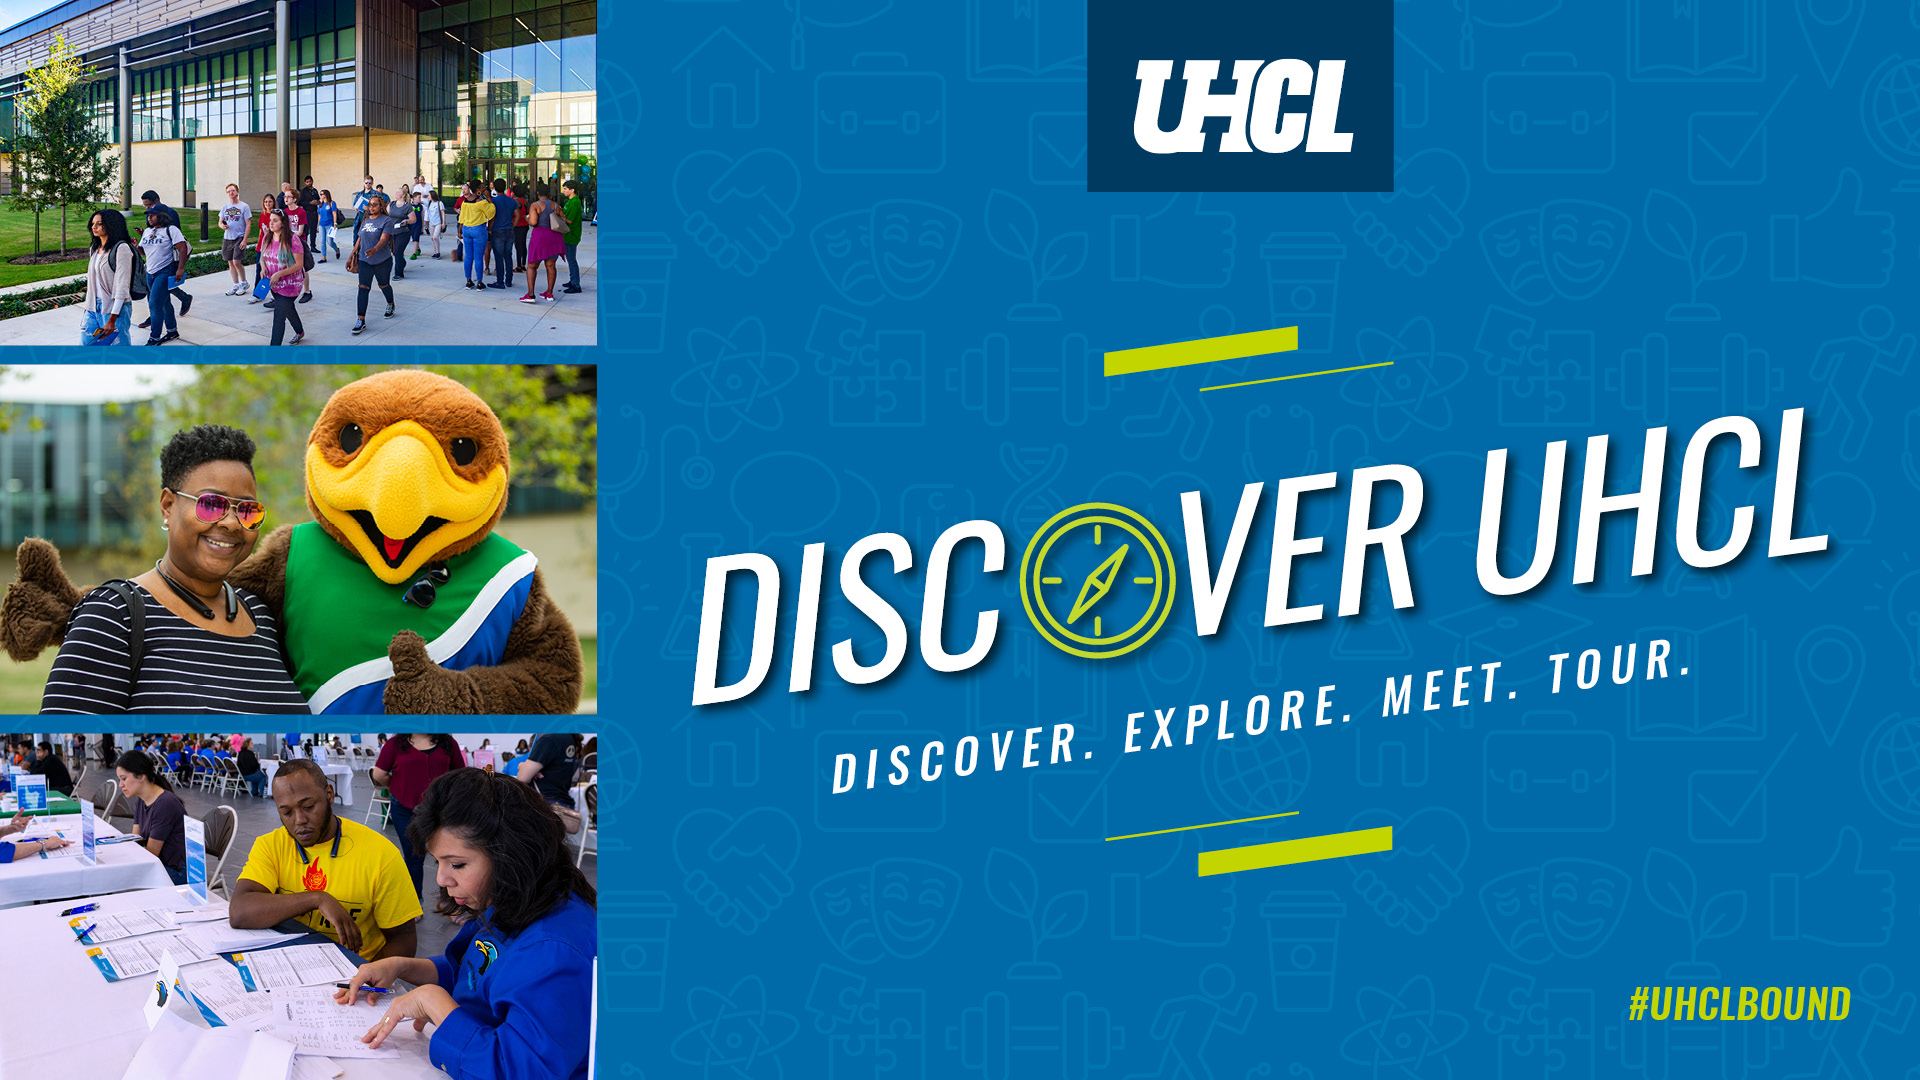 Discover UHCL